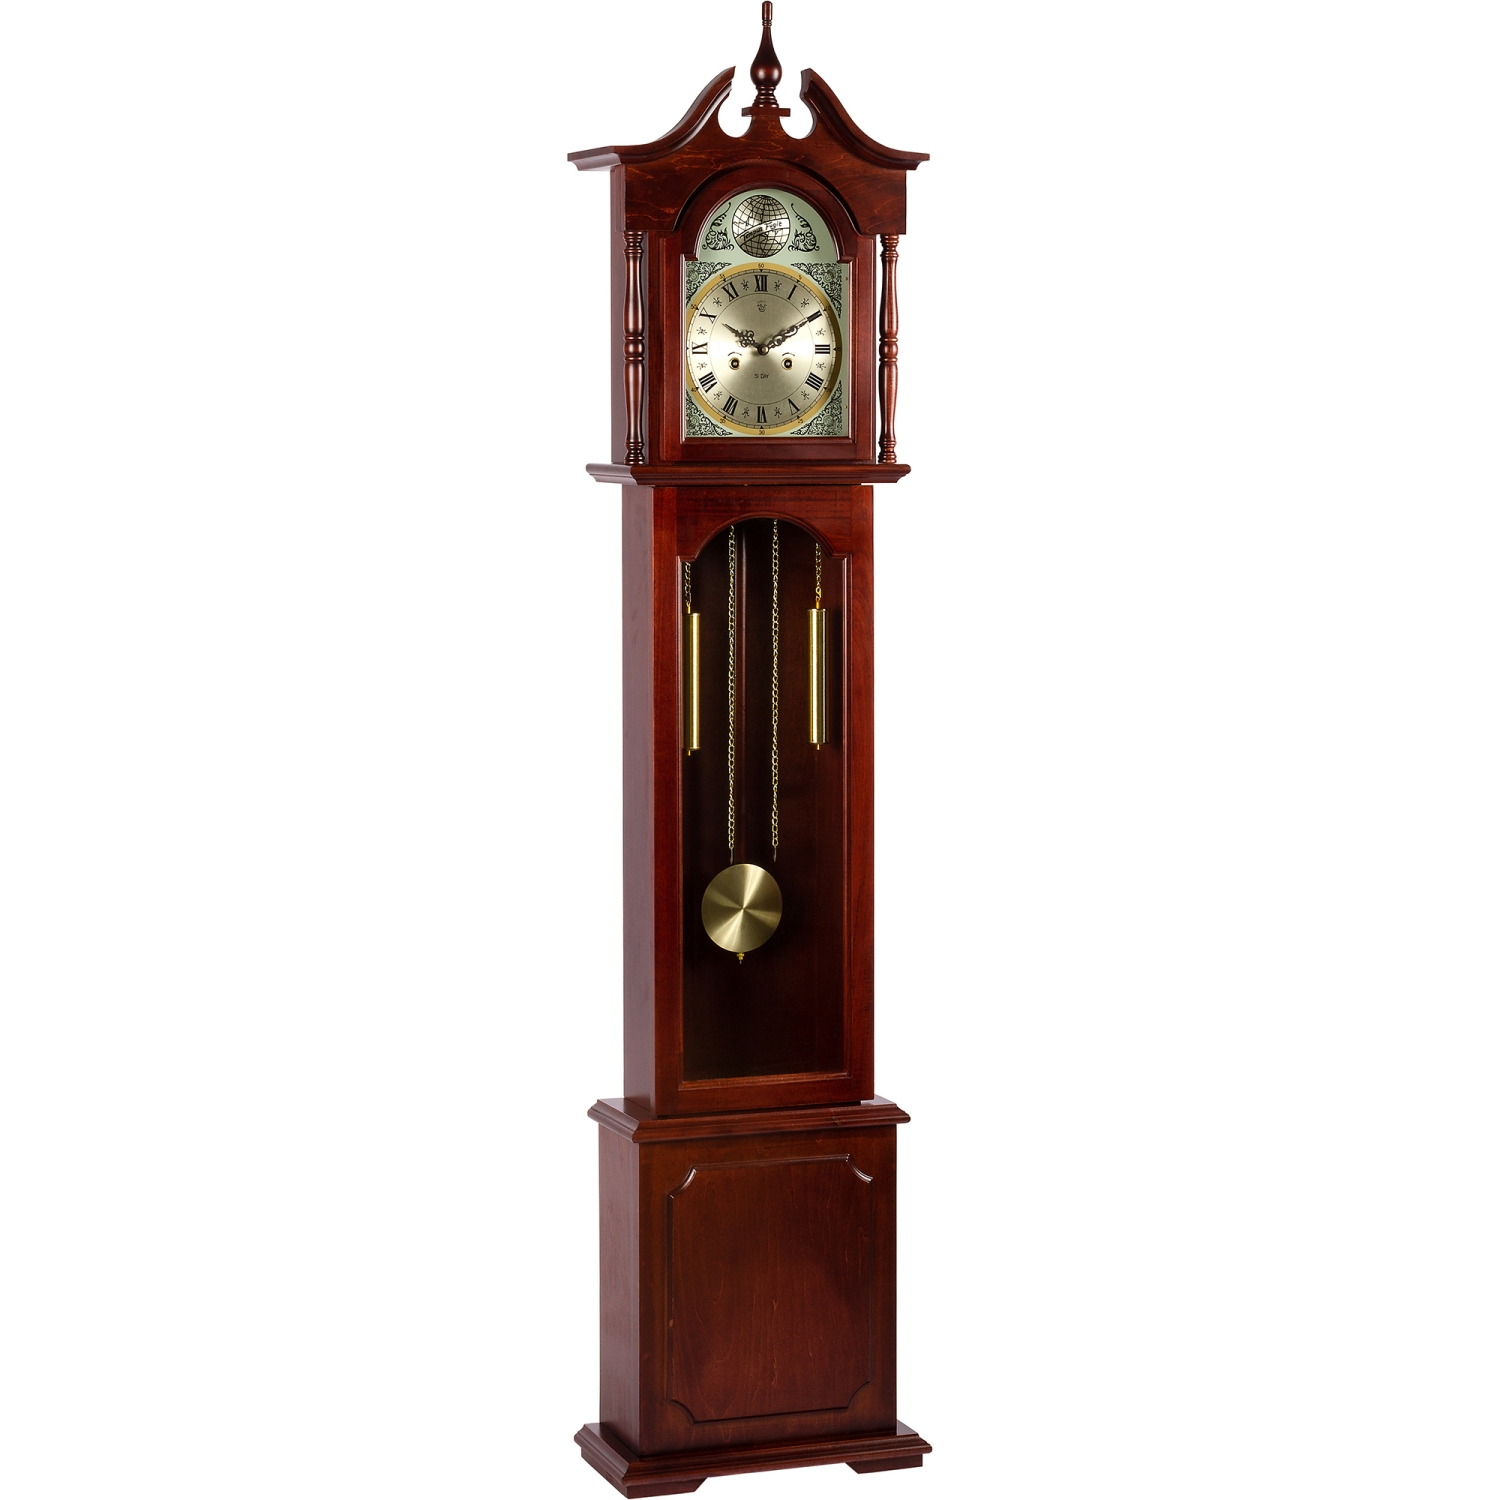 standuhr pendeluhr uhr pendel regulator mahagoni 196 cm ebay. Black Bedroom Furniture Sets. Home Design Ideas